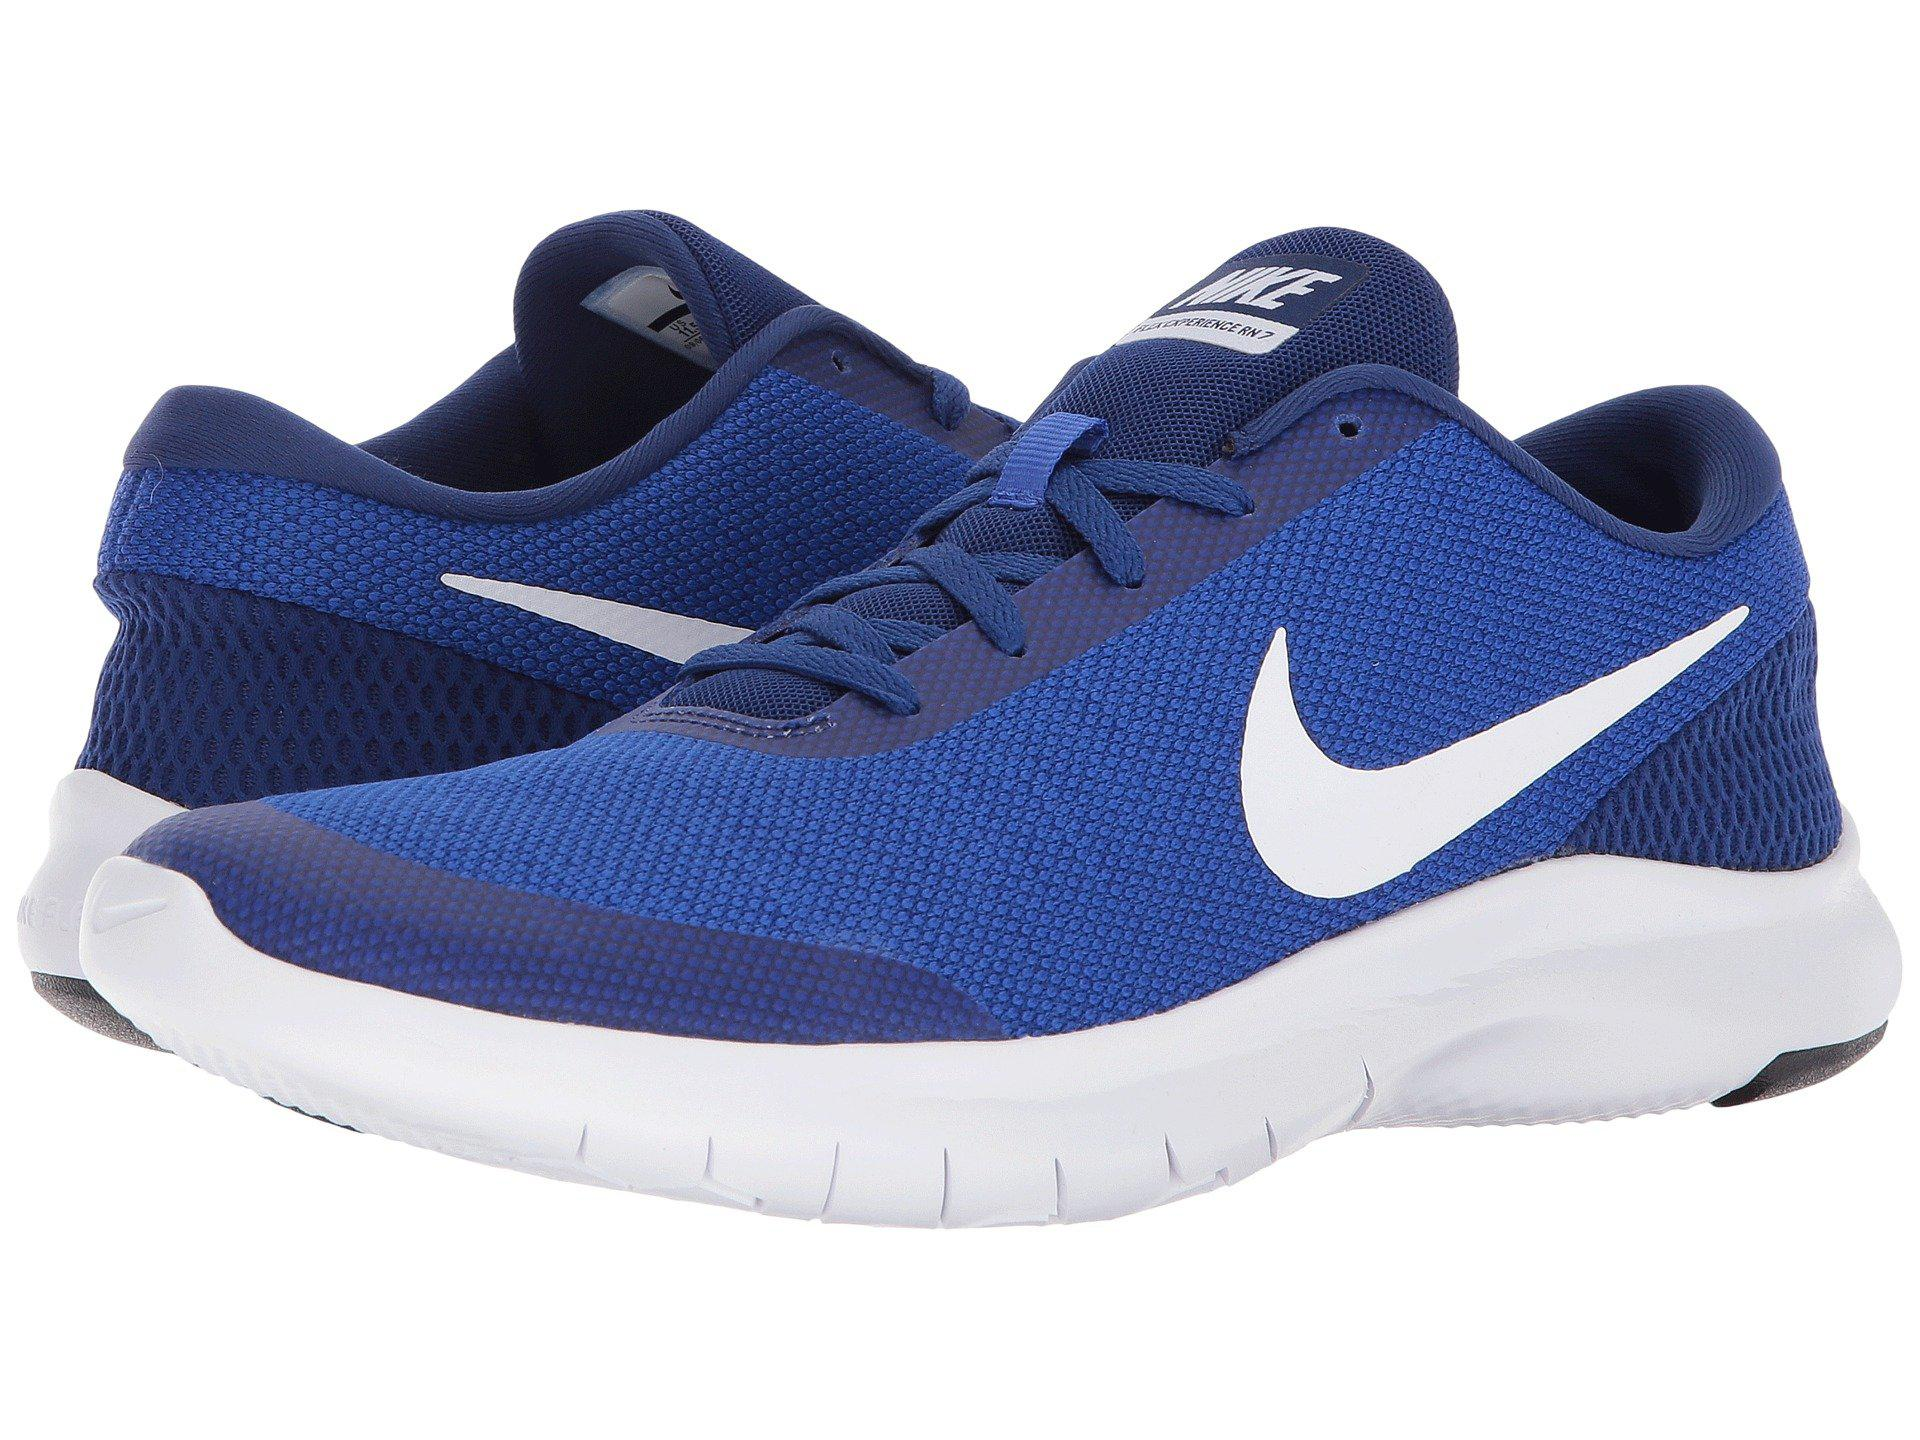 Nike Synthetic Flex Experience Rn 7 In Blue For Men Lyst